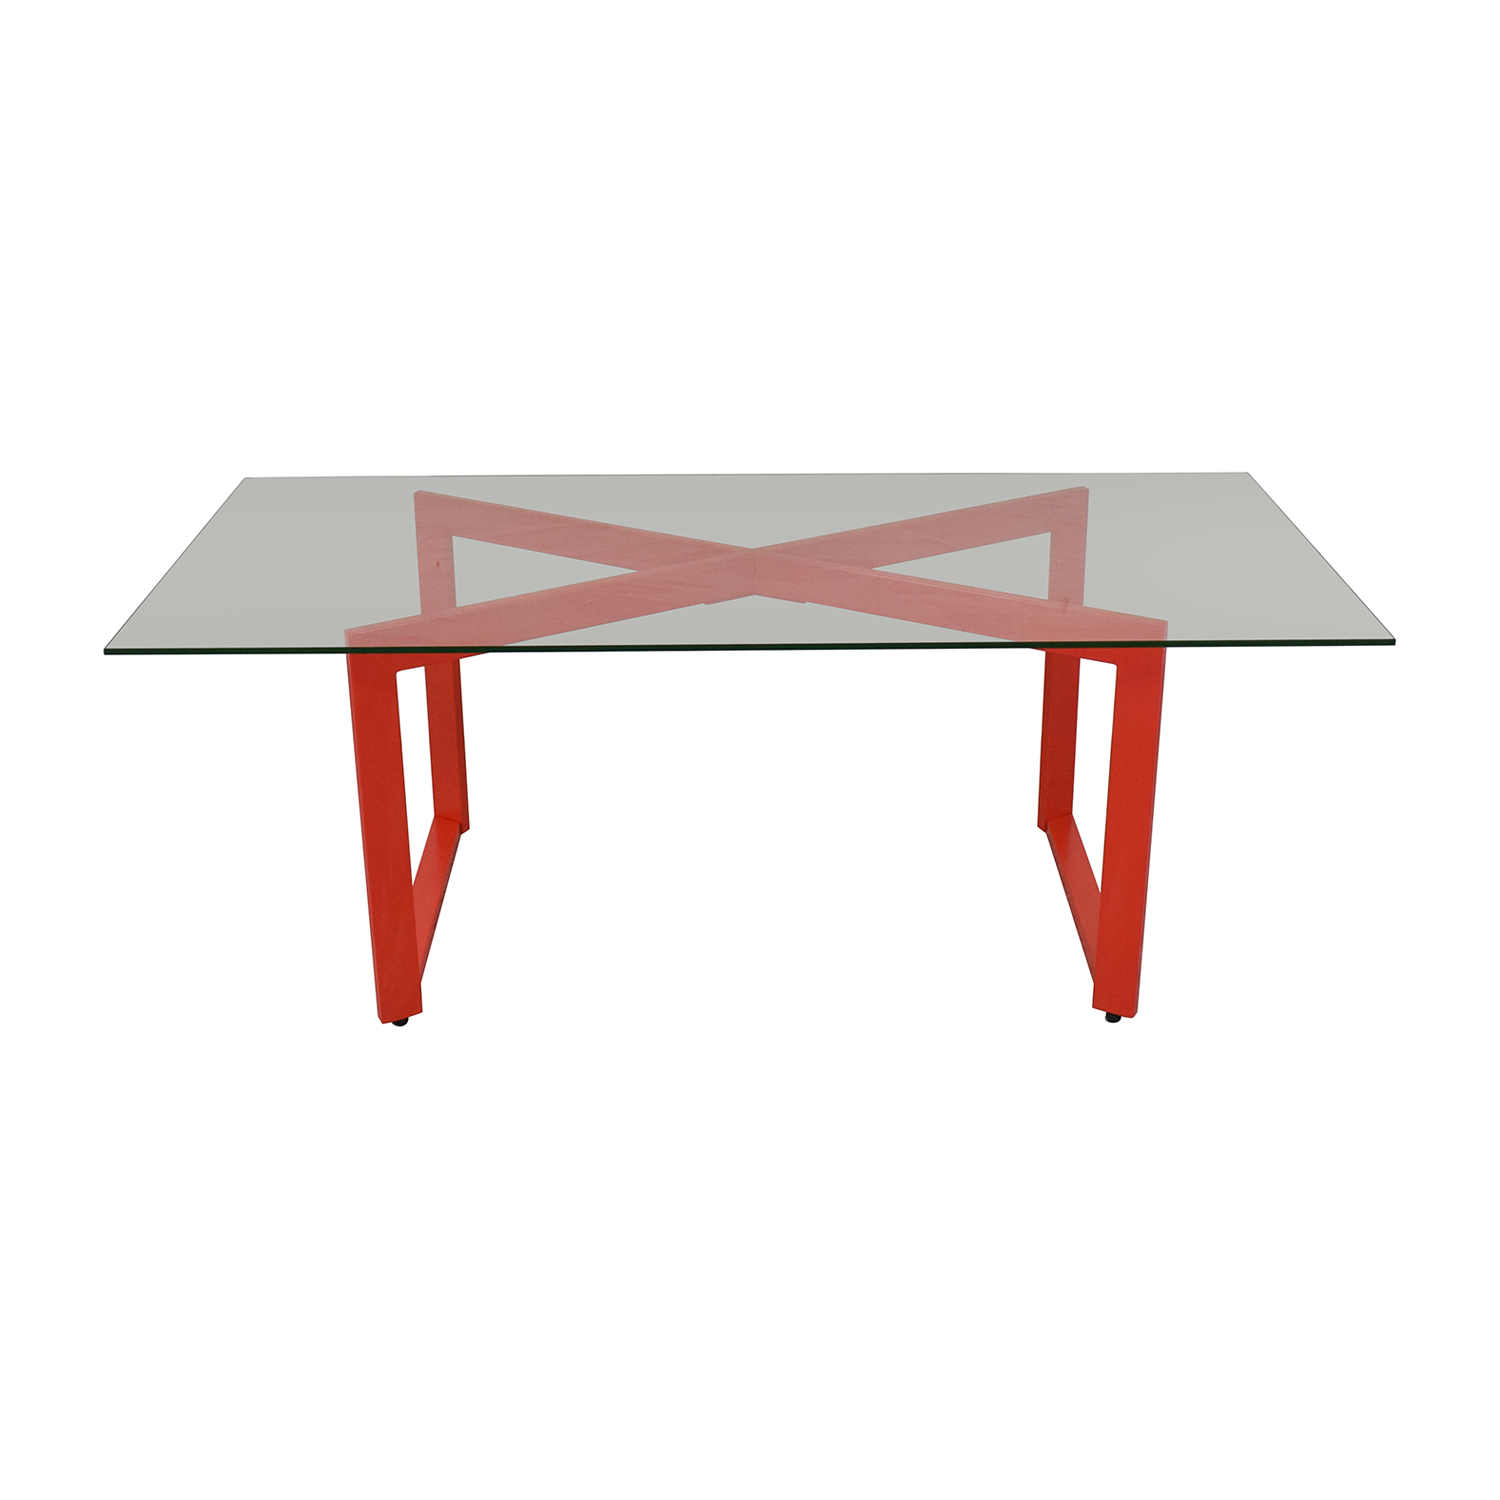 CB2 CB2 Glass Dining Table discount